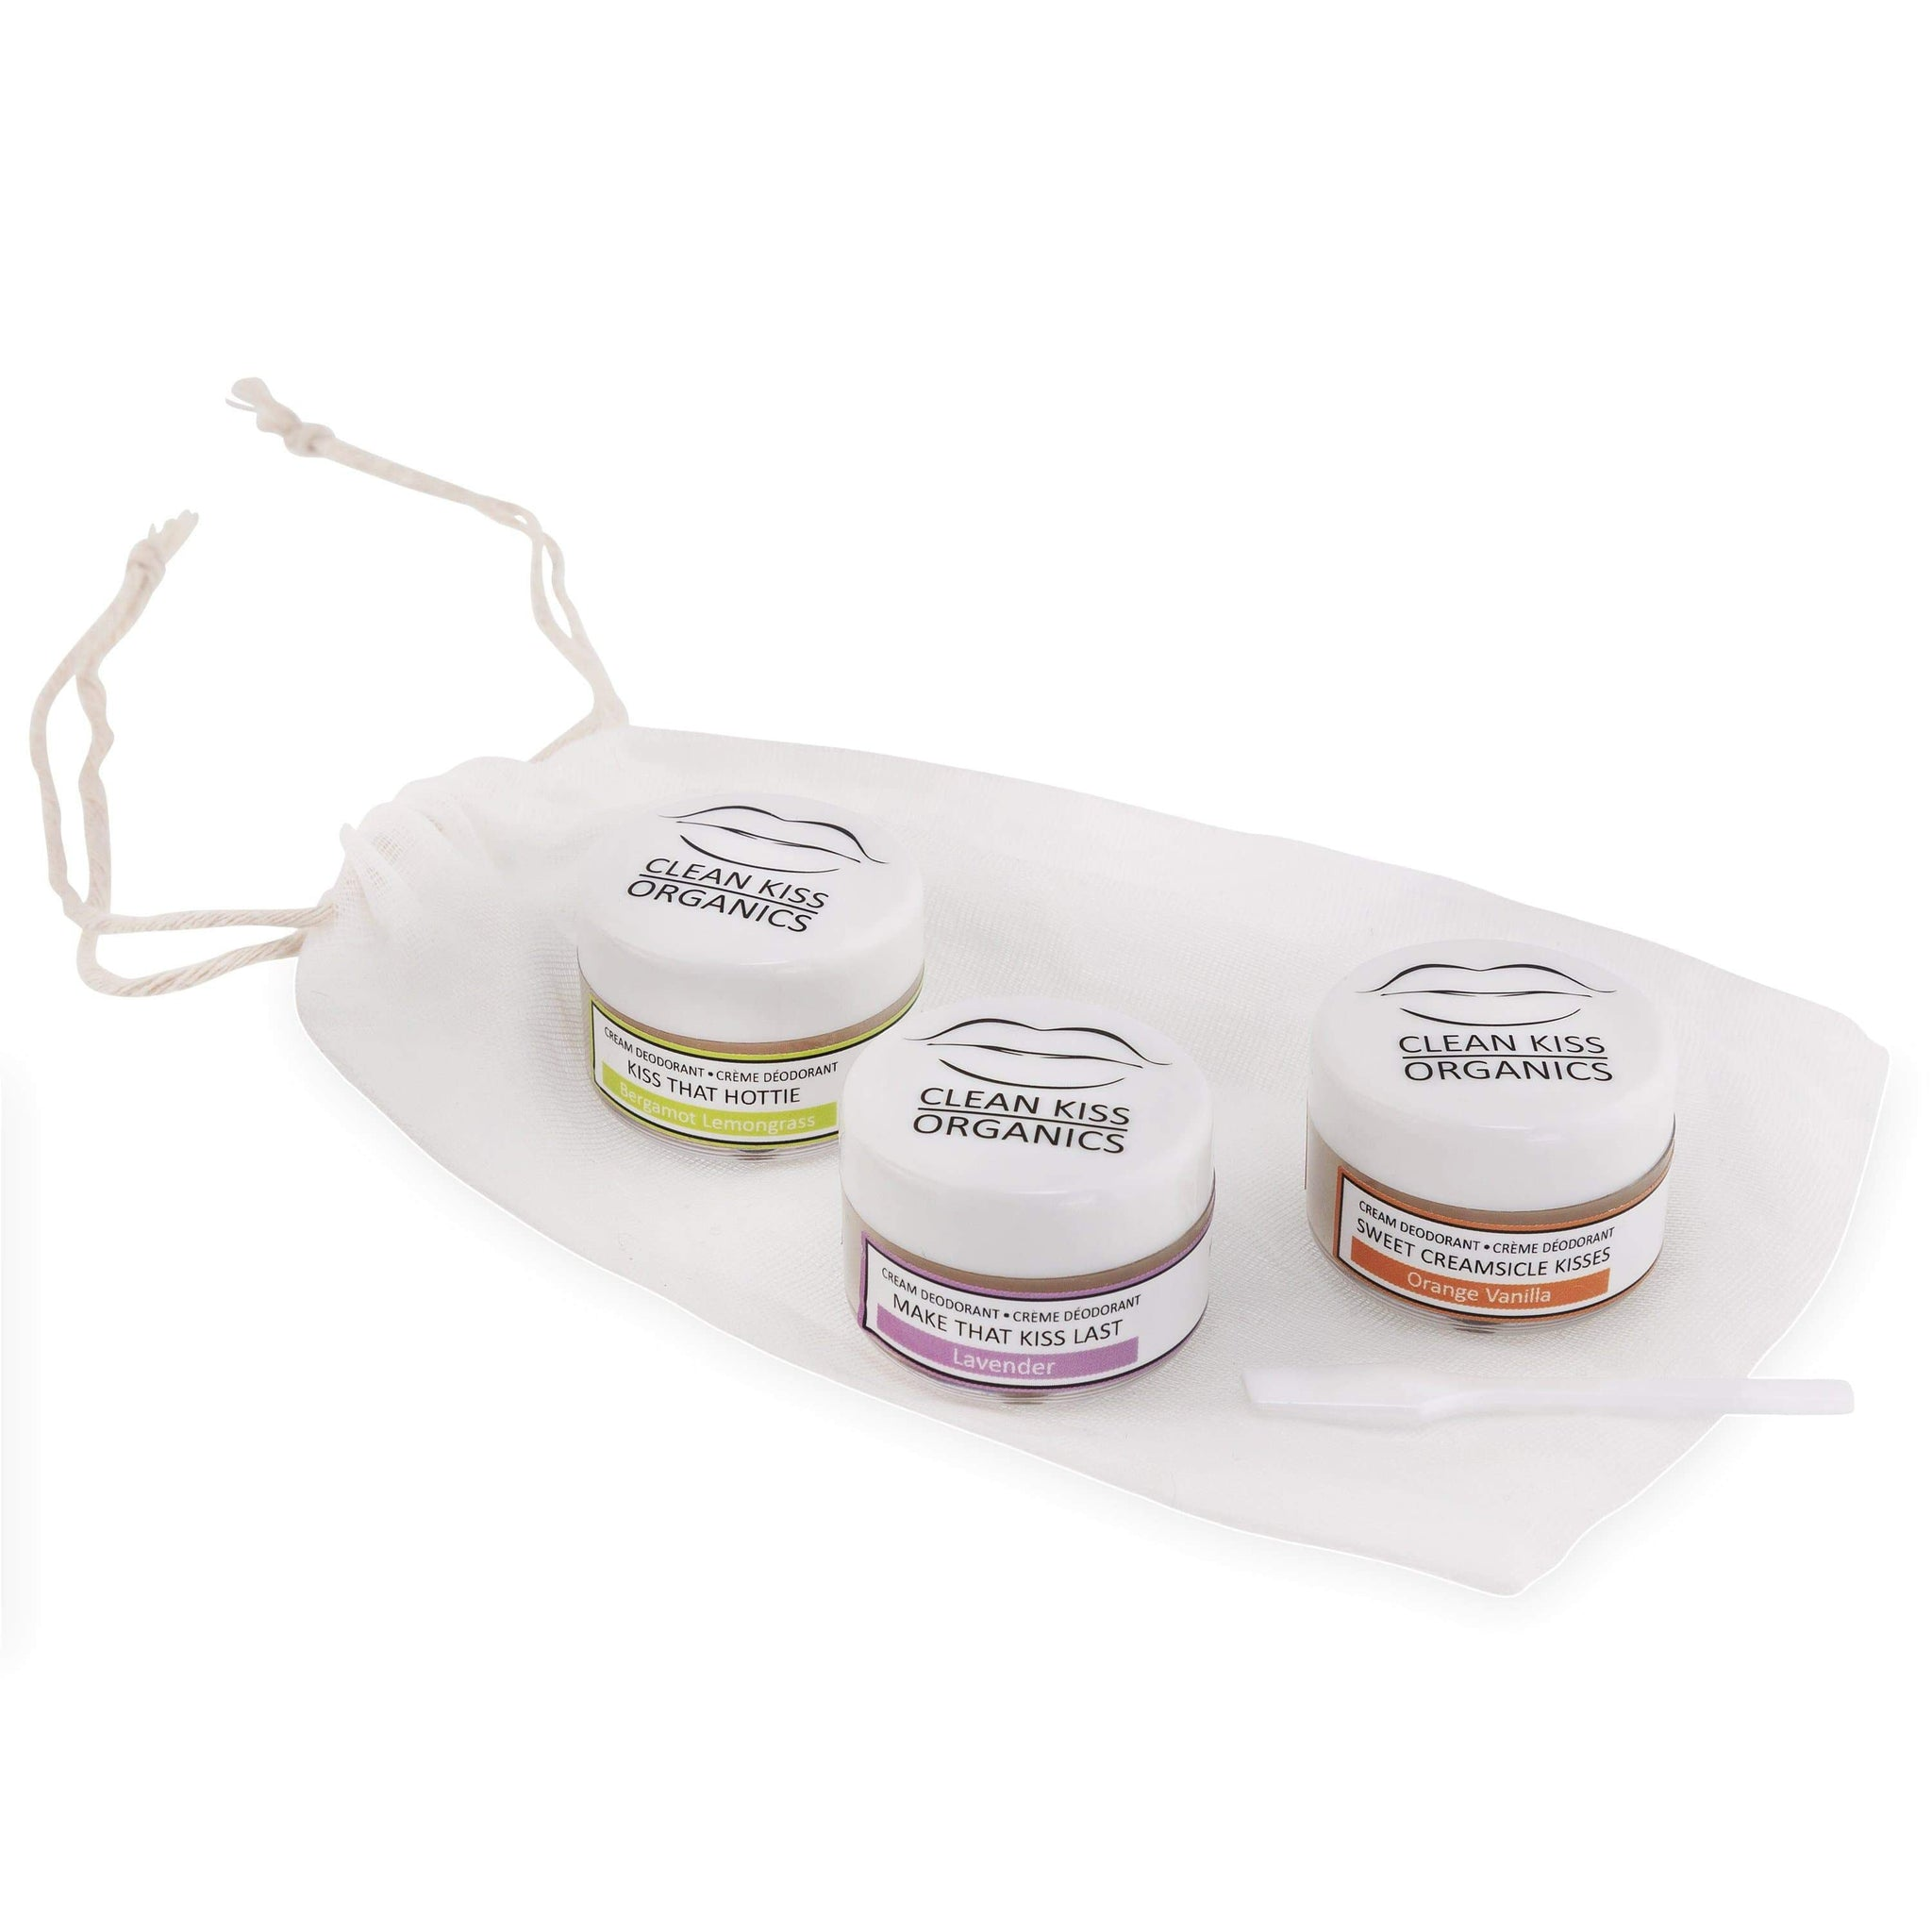 Natural deodorant travel set of our best selling scents in a hemp cotton bag